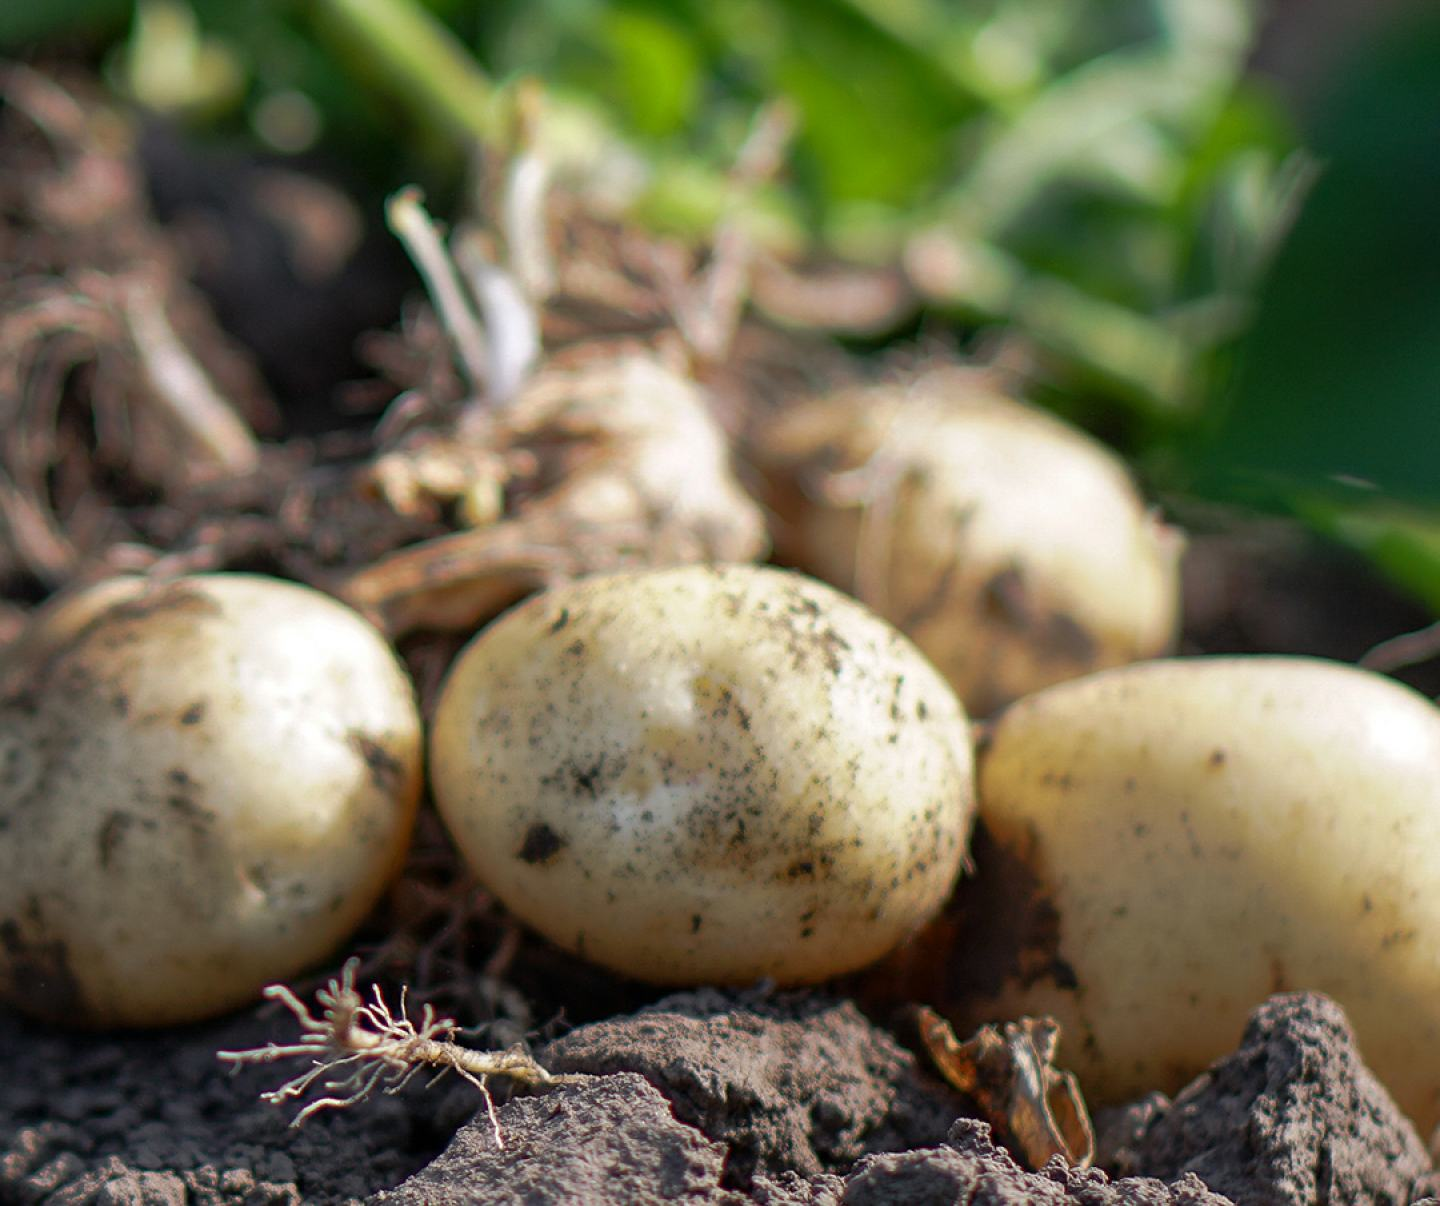 Close up of potatoes in field